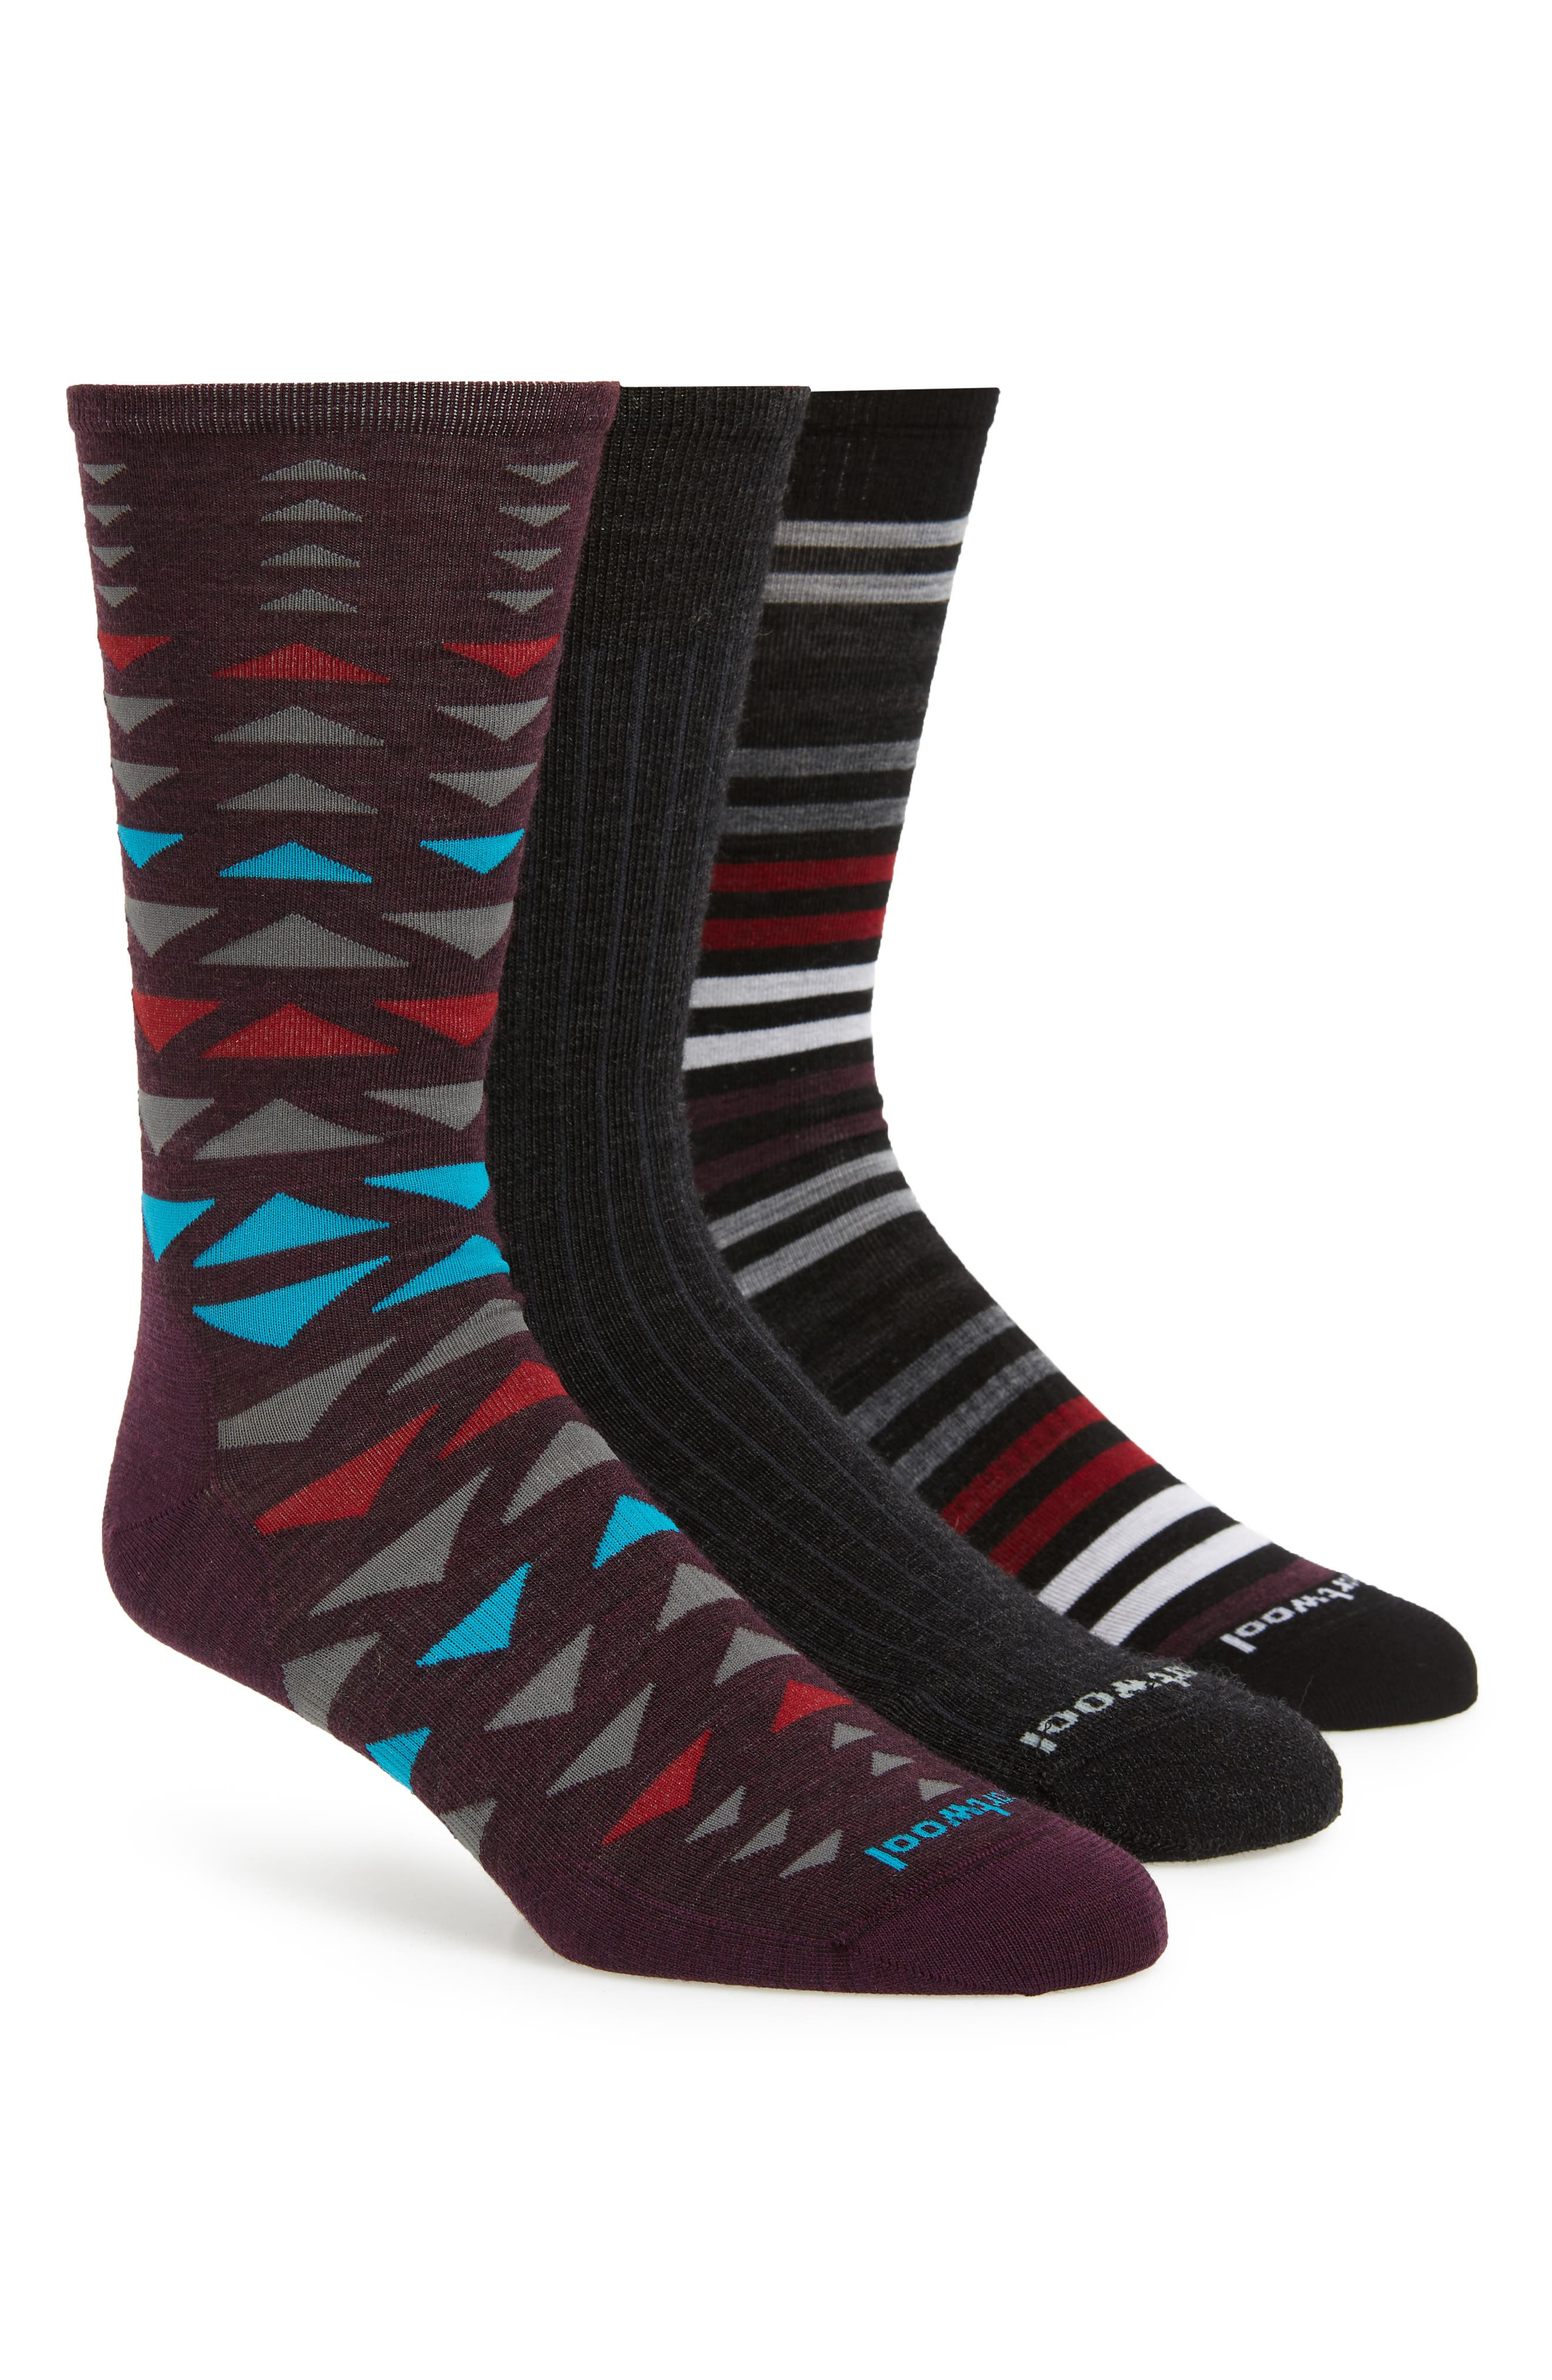 Trio 3-Pack Socks, Main, color, 020